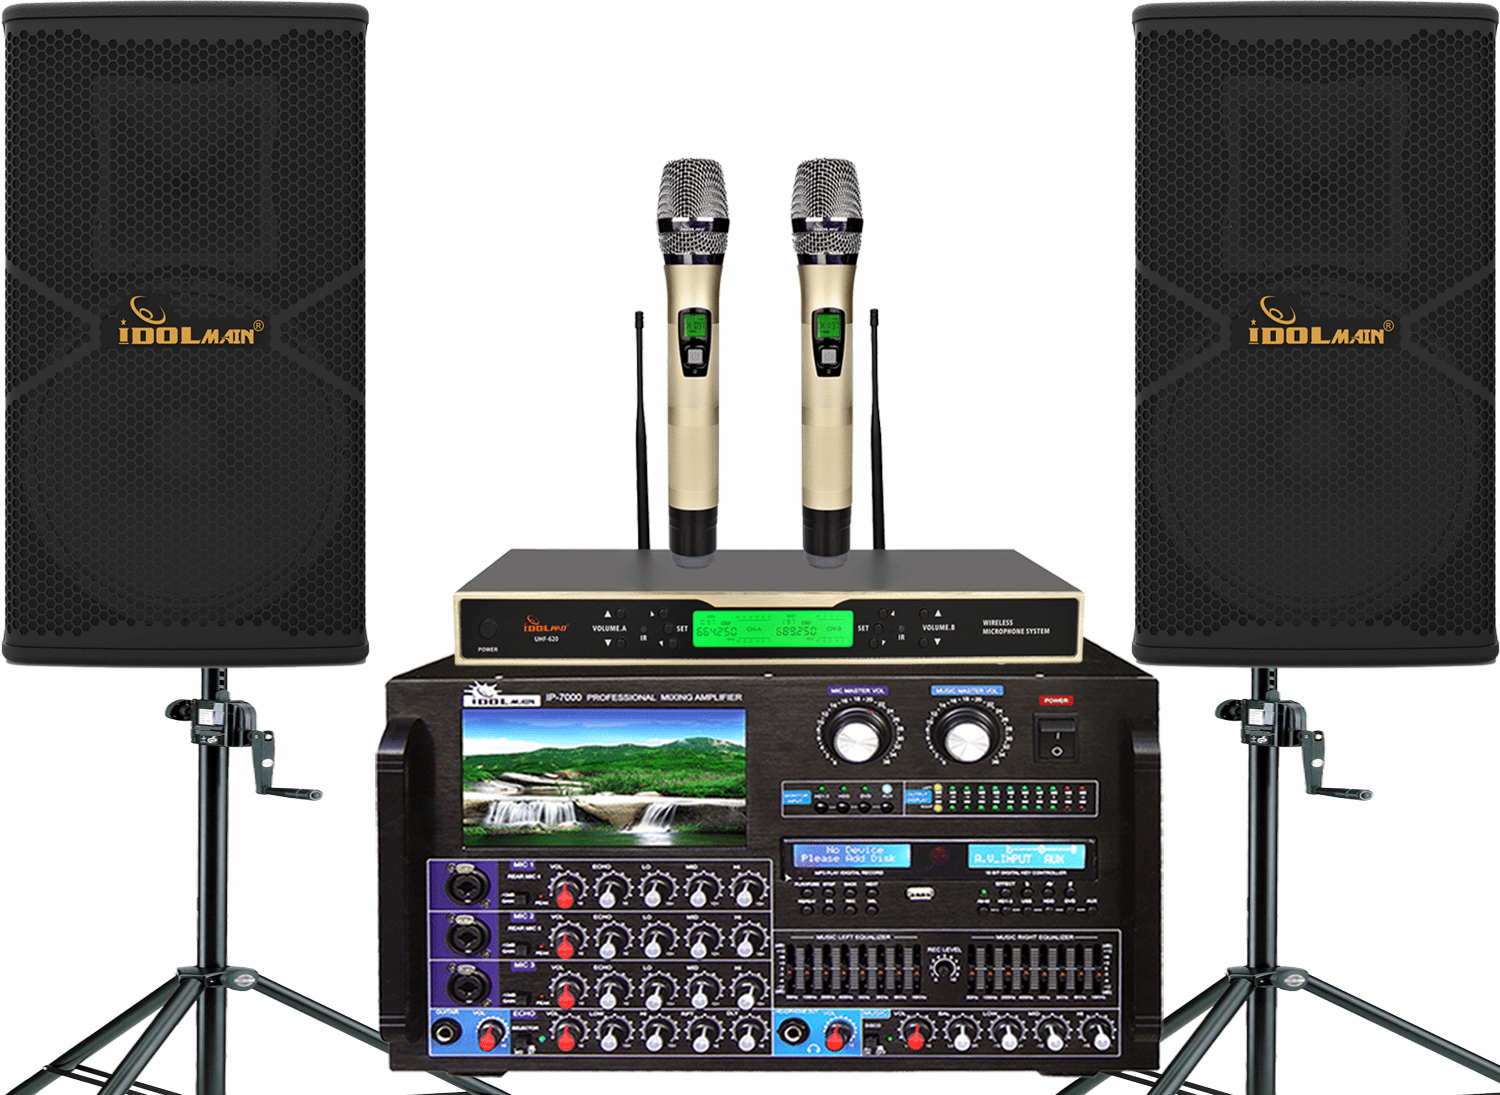 "<font color="" blue"">PACKAGE 8 </font> -- IPS-P18 Speakers, IP-7000 Mixing Amplifier, Wireless Microphone UHF-620"